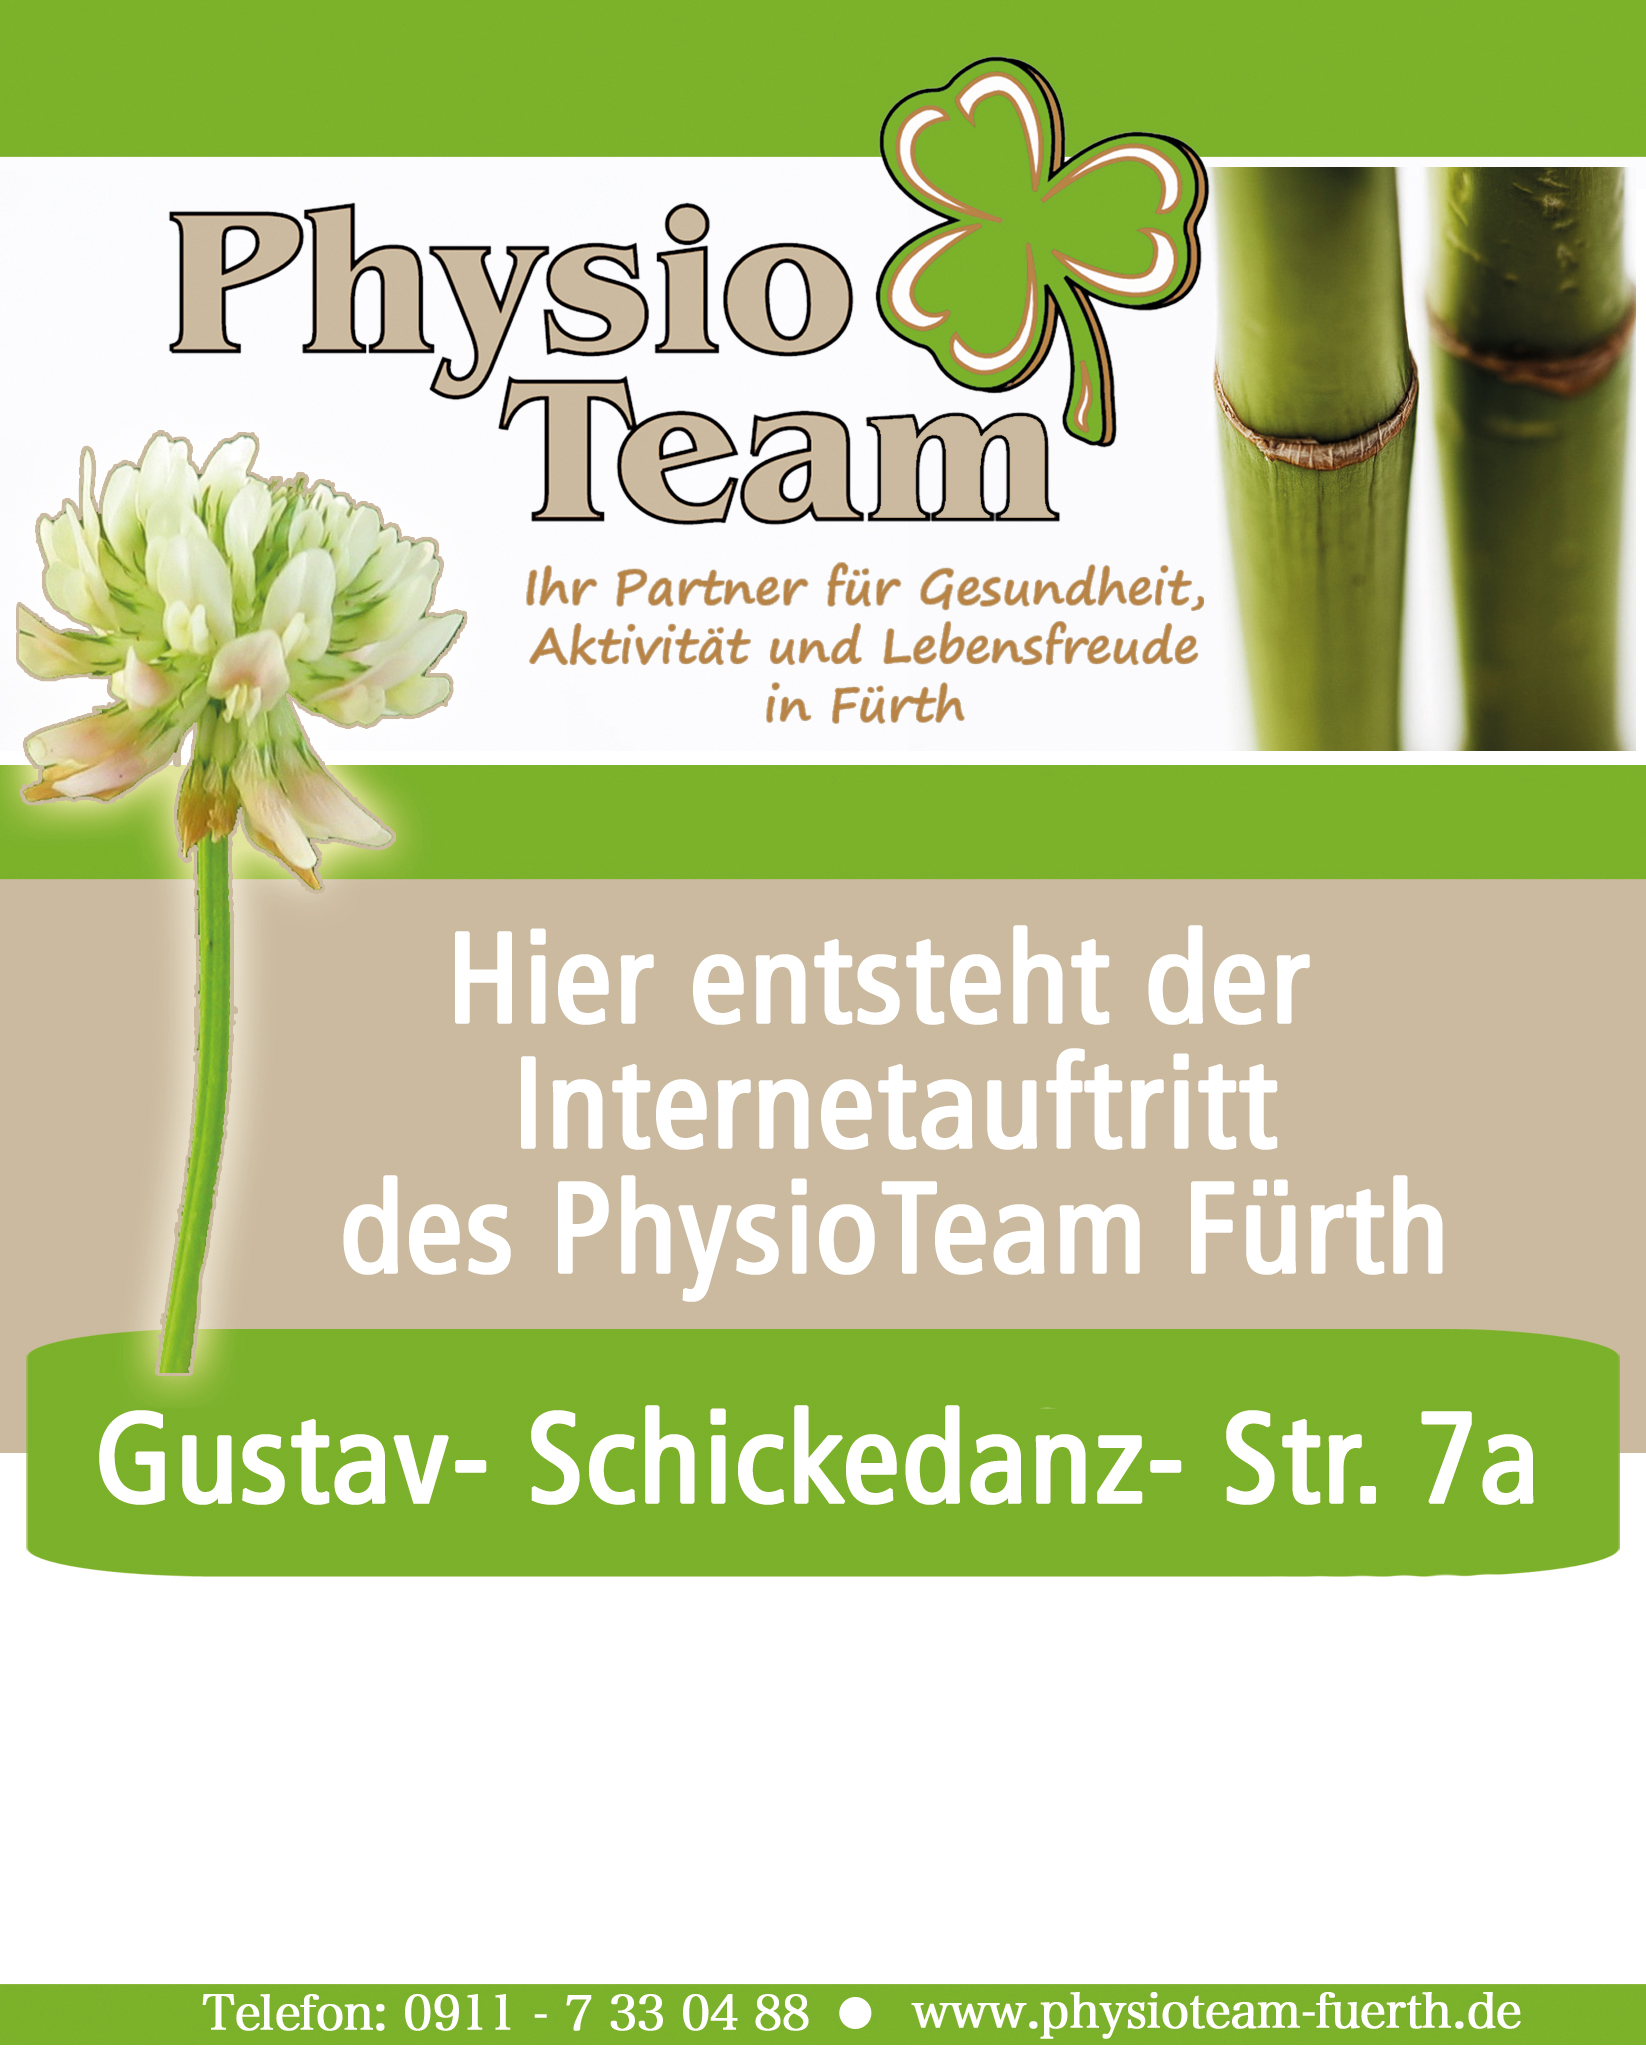 Physioteam Fürth